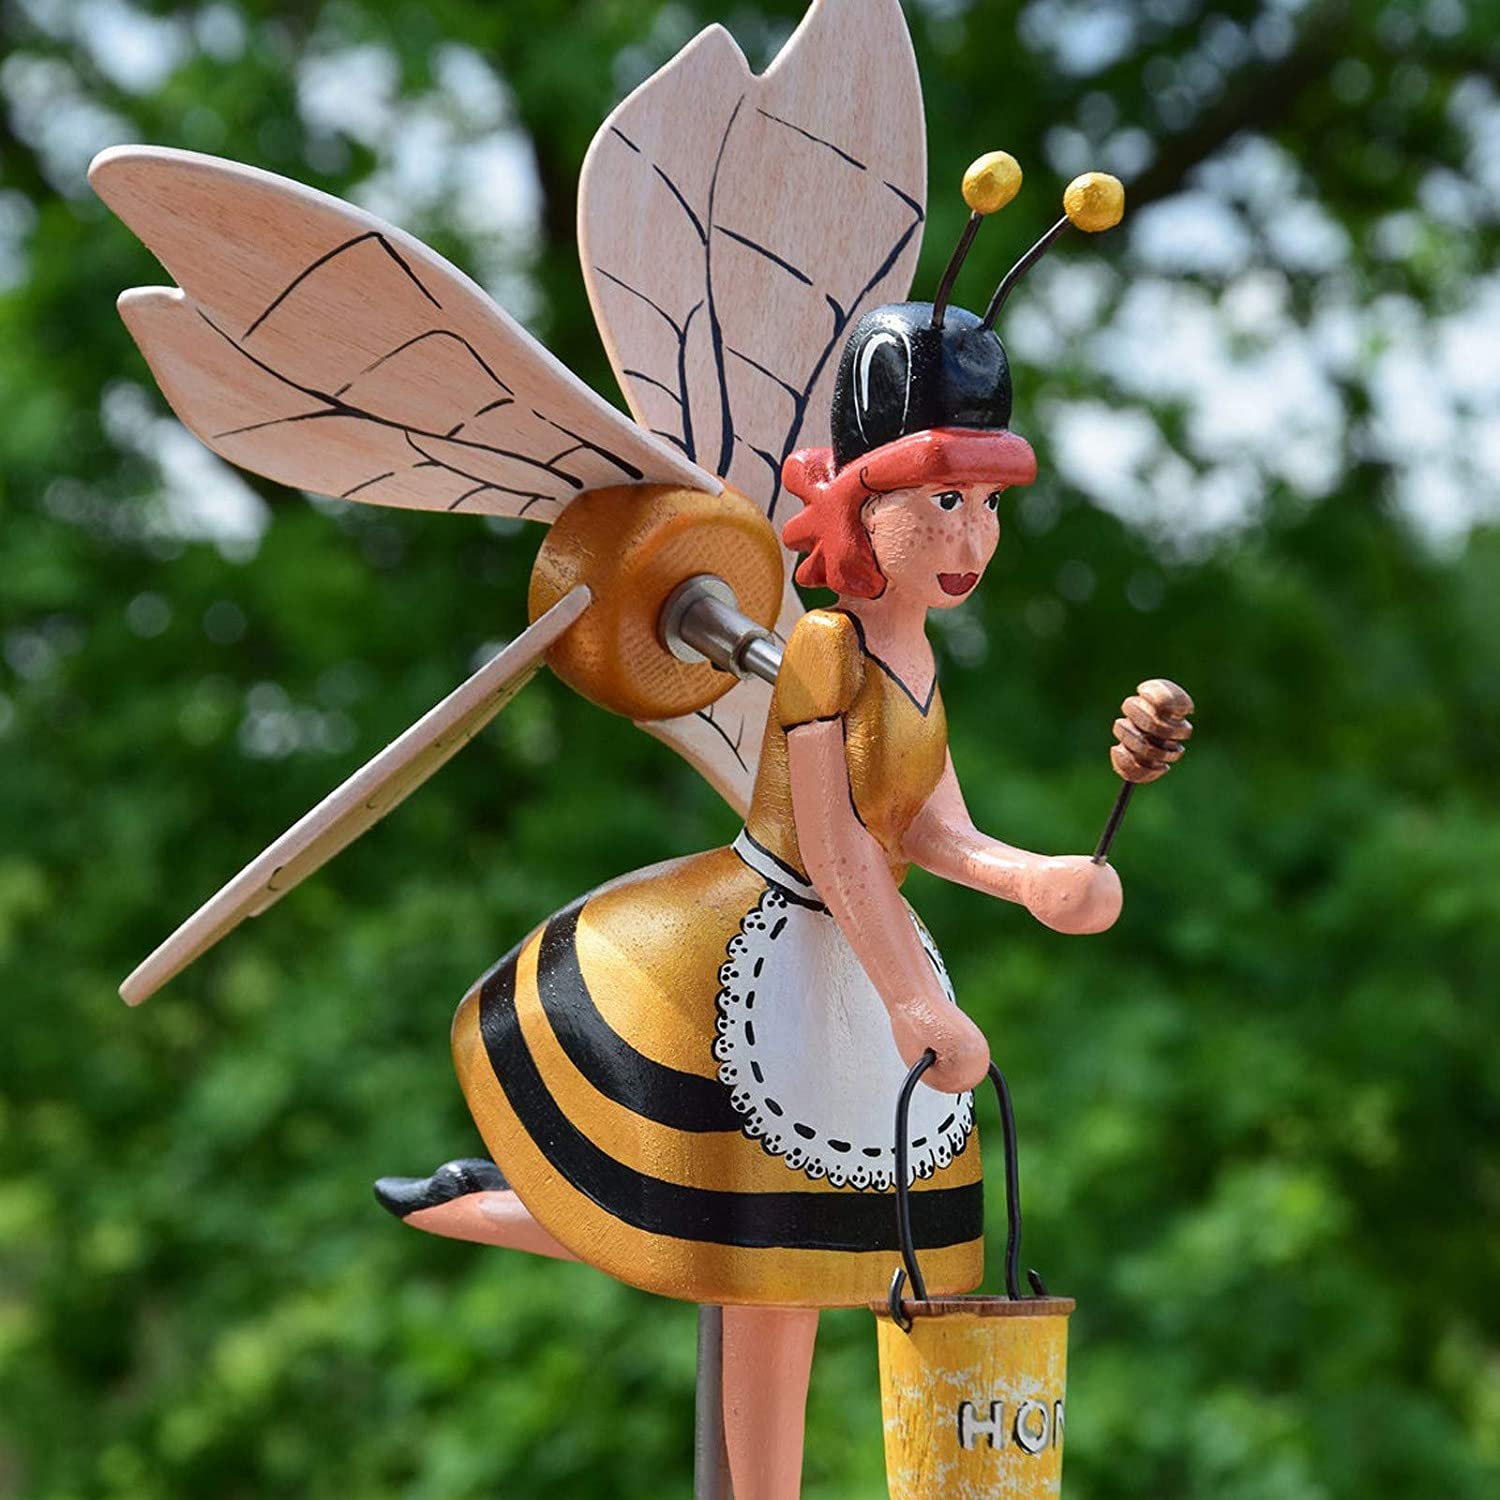 Flying Bee Girl Whirligigs Wind Spinners, Bumble Bee Garden Windmill Art, Rotating Bumblebee Winder Whirligig Bee Statues Decor Stakes for Outdoor Garden Yard Art Patio Decor